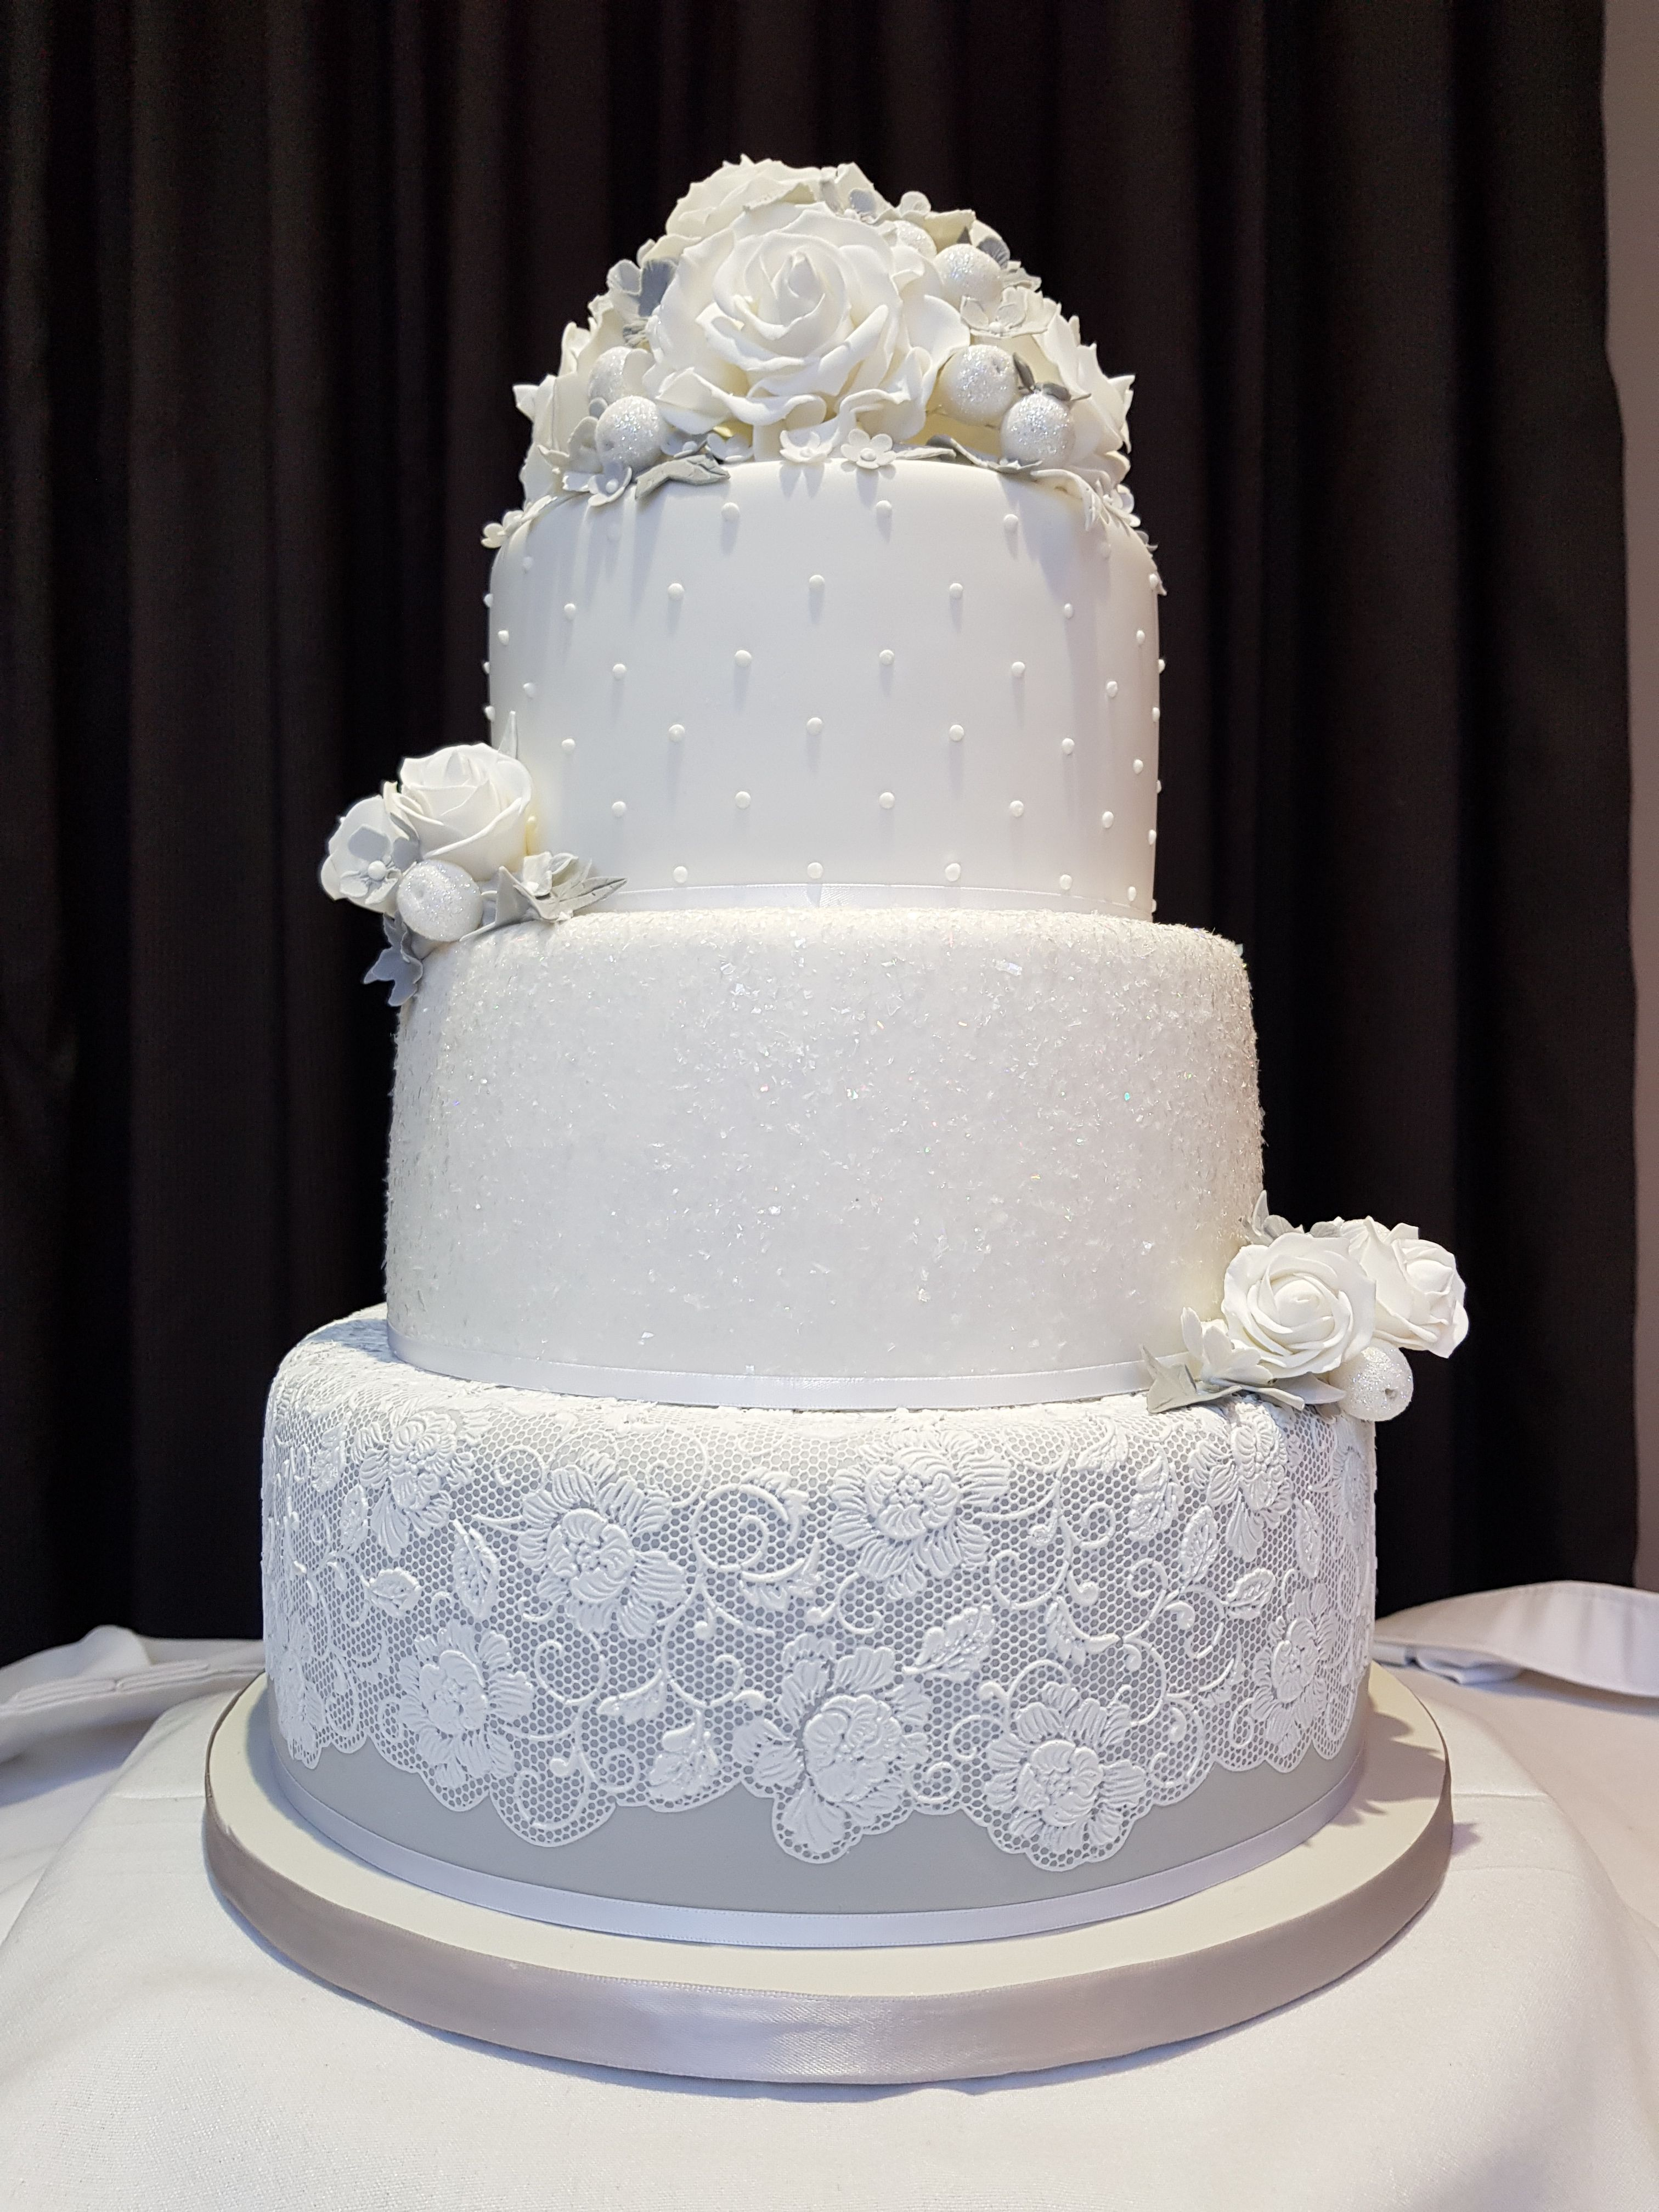 Winter silver and grey wedding cake with lace and sugar flowers